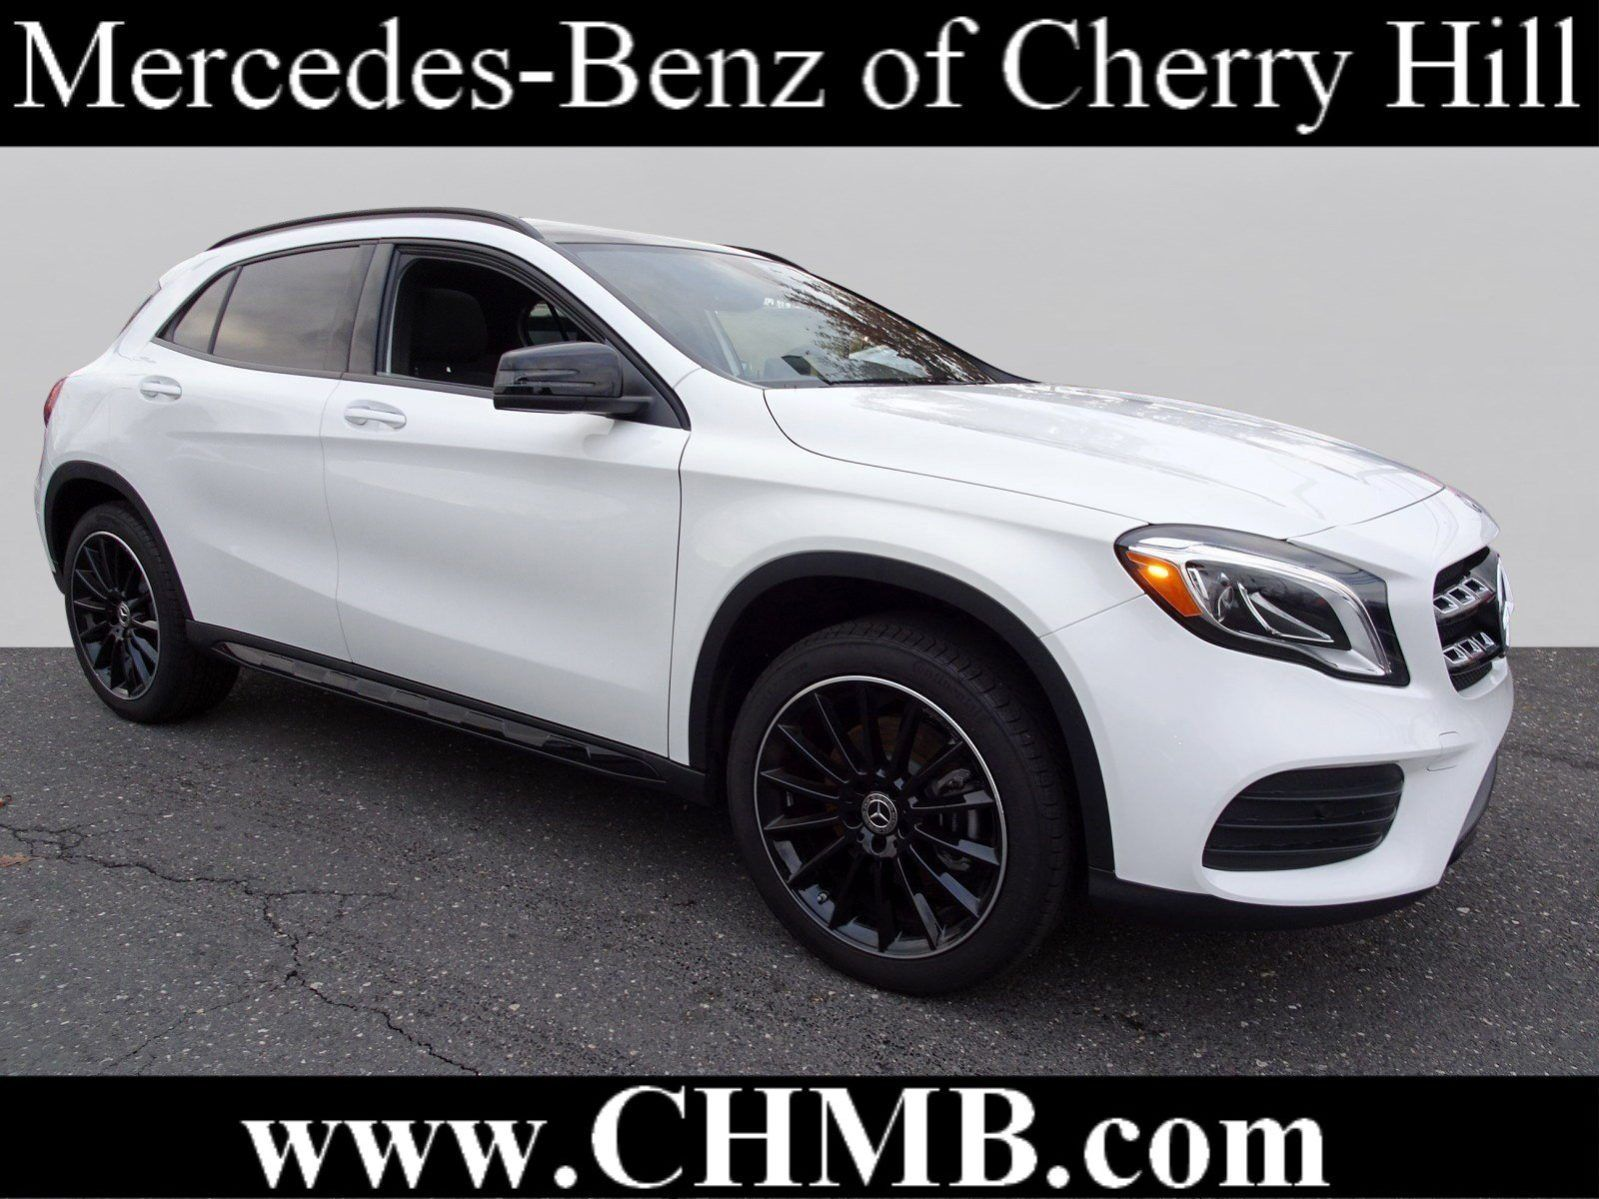 Check out this New 2019 MercedesBenz GLAClass GLA 250